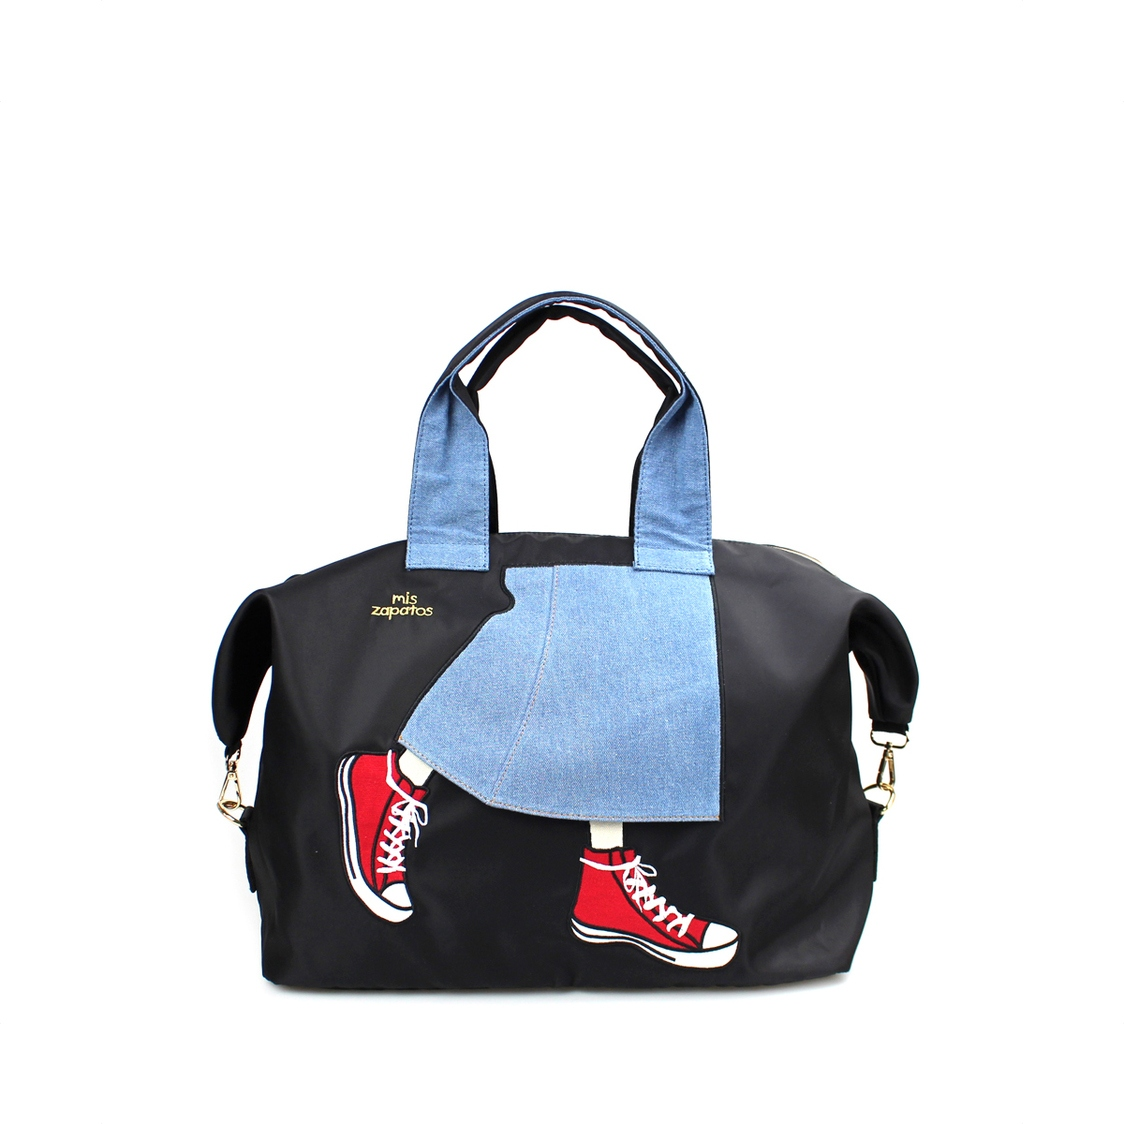 2-Way Use Jeans Skirt With Sneakers Travel Bag Black